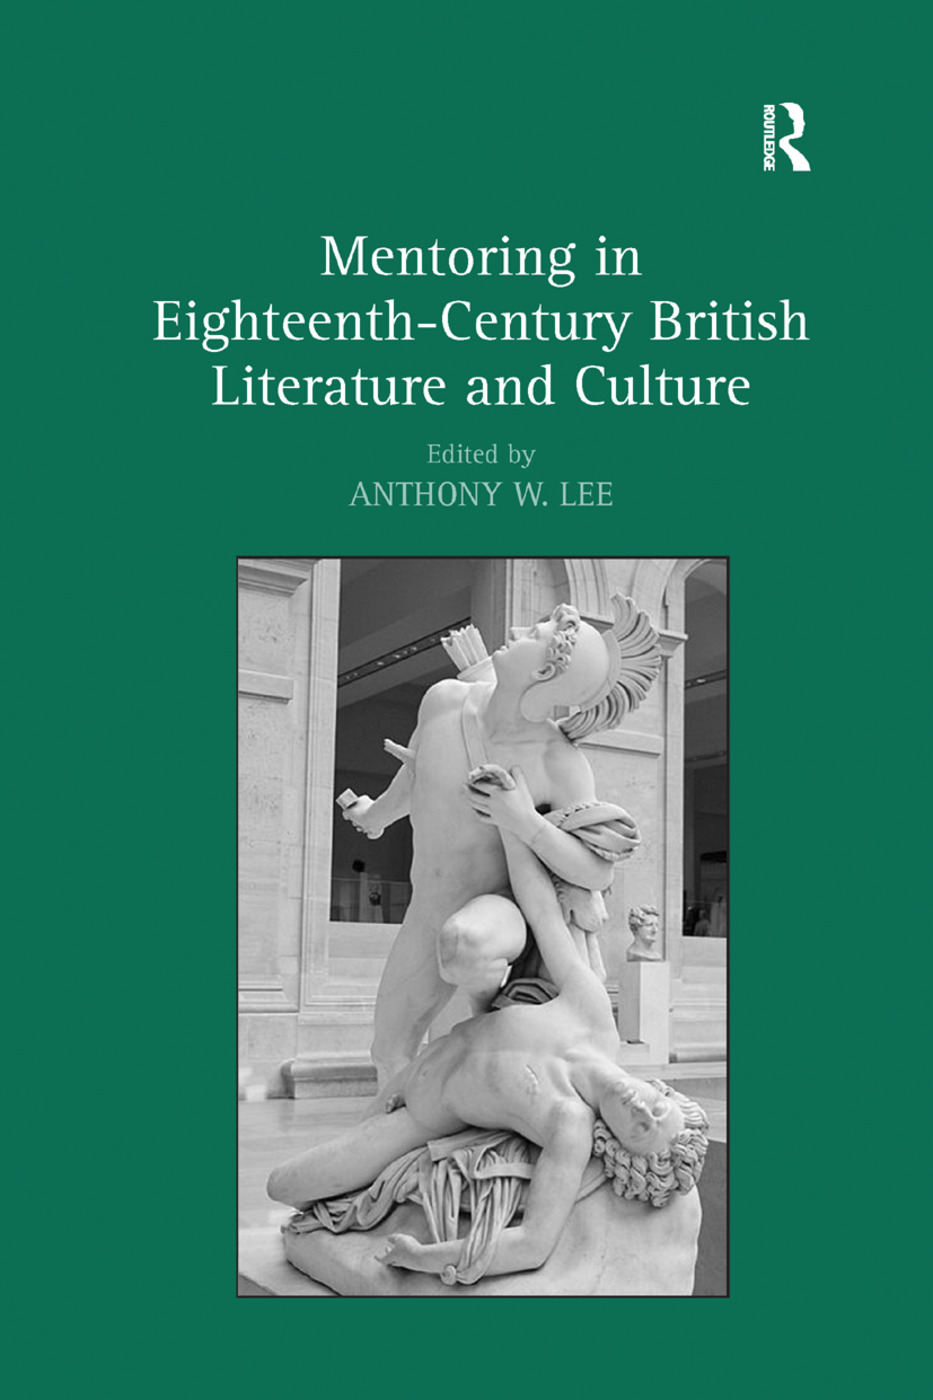 Mentoring in Eighteenth-Century British Literature and Culture: 1st Edition (Paperback) book cover